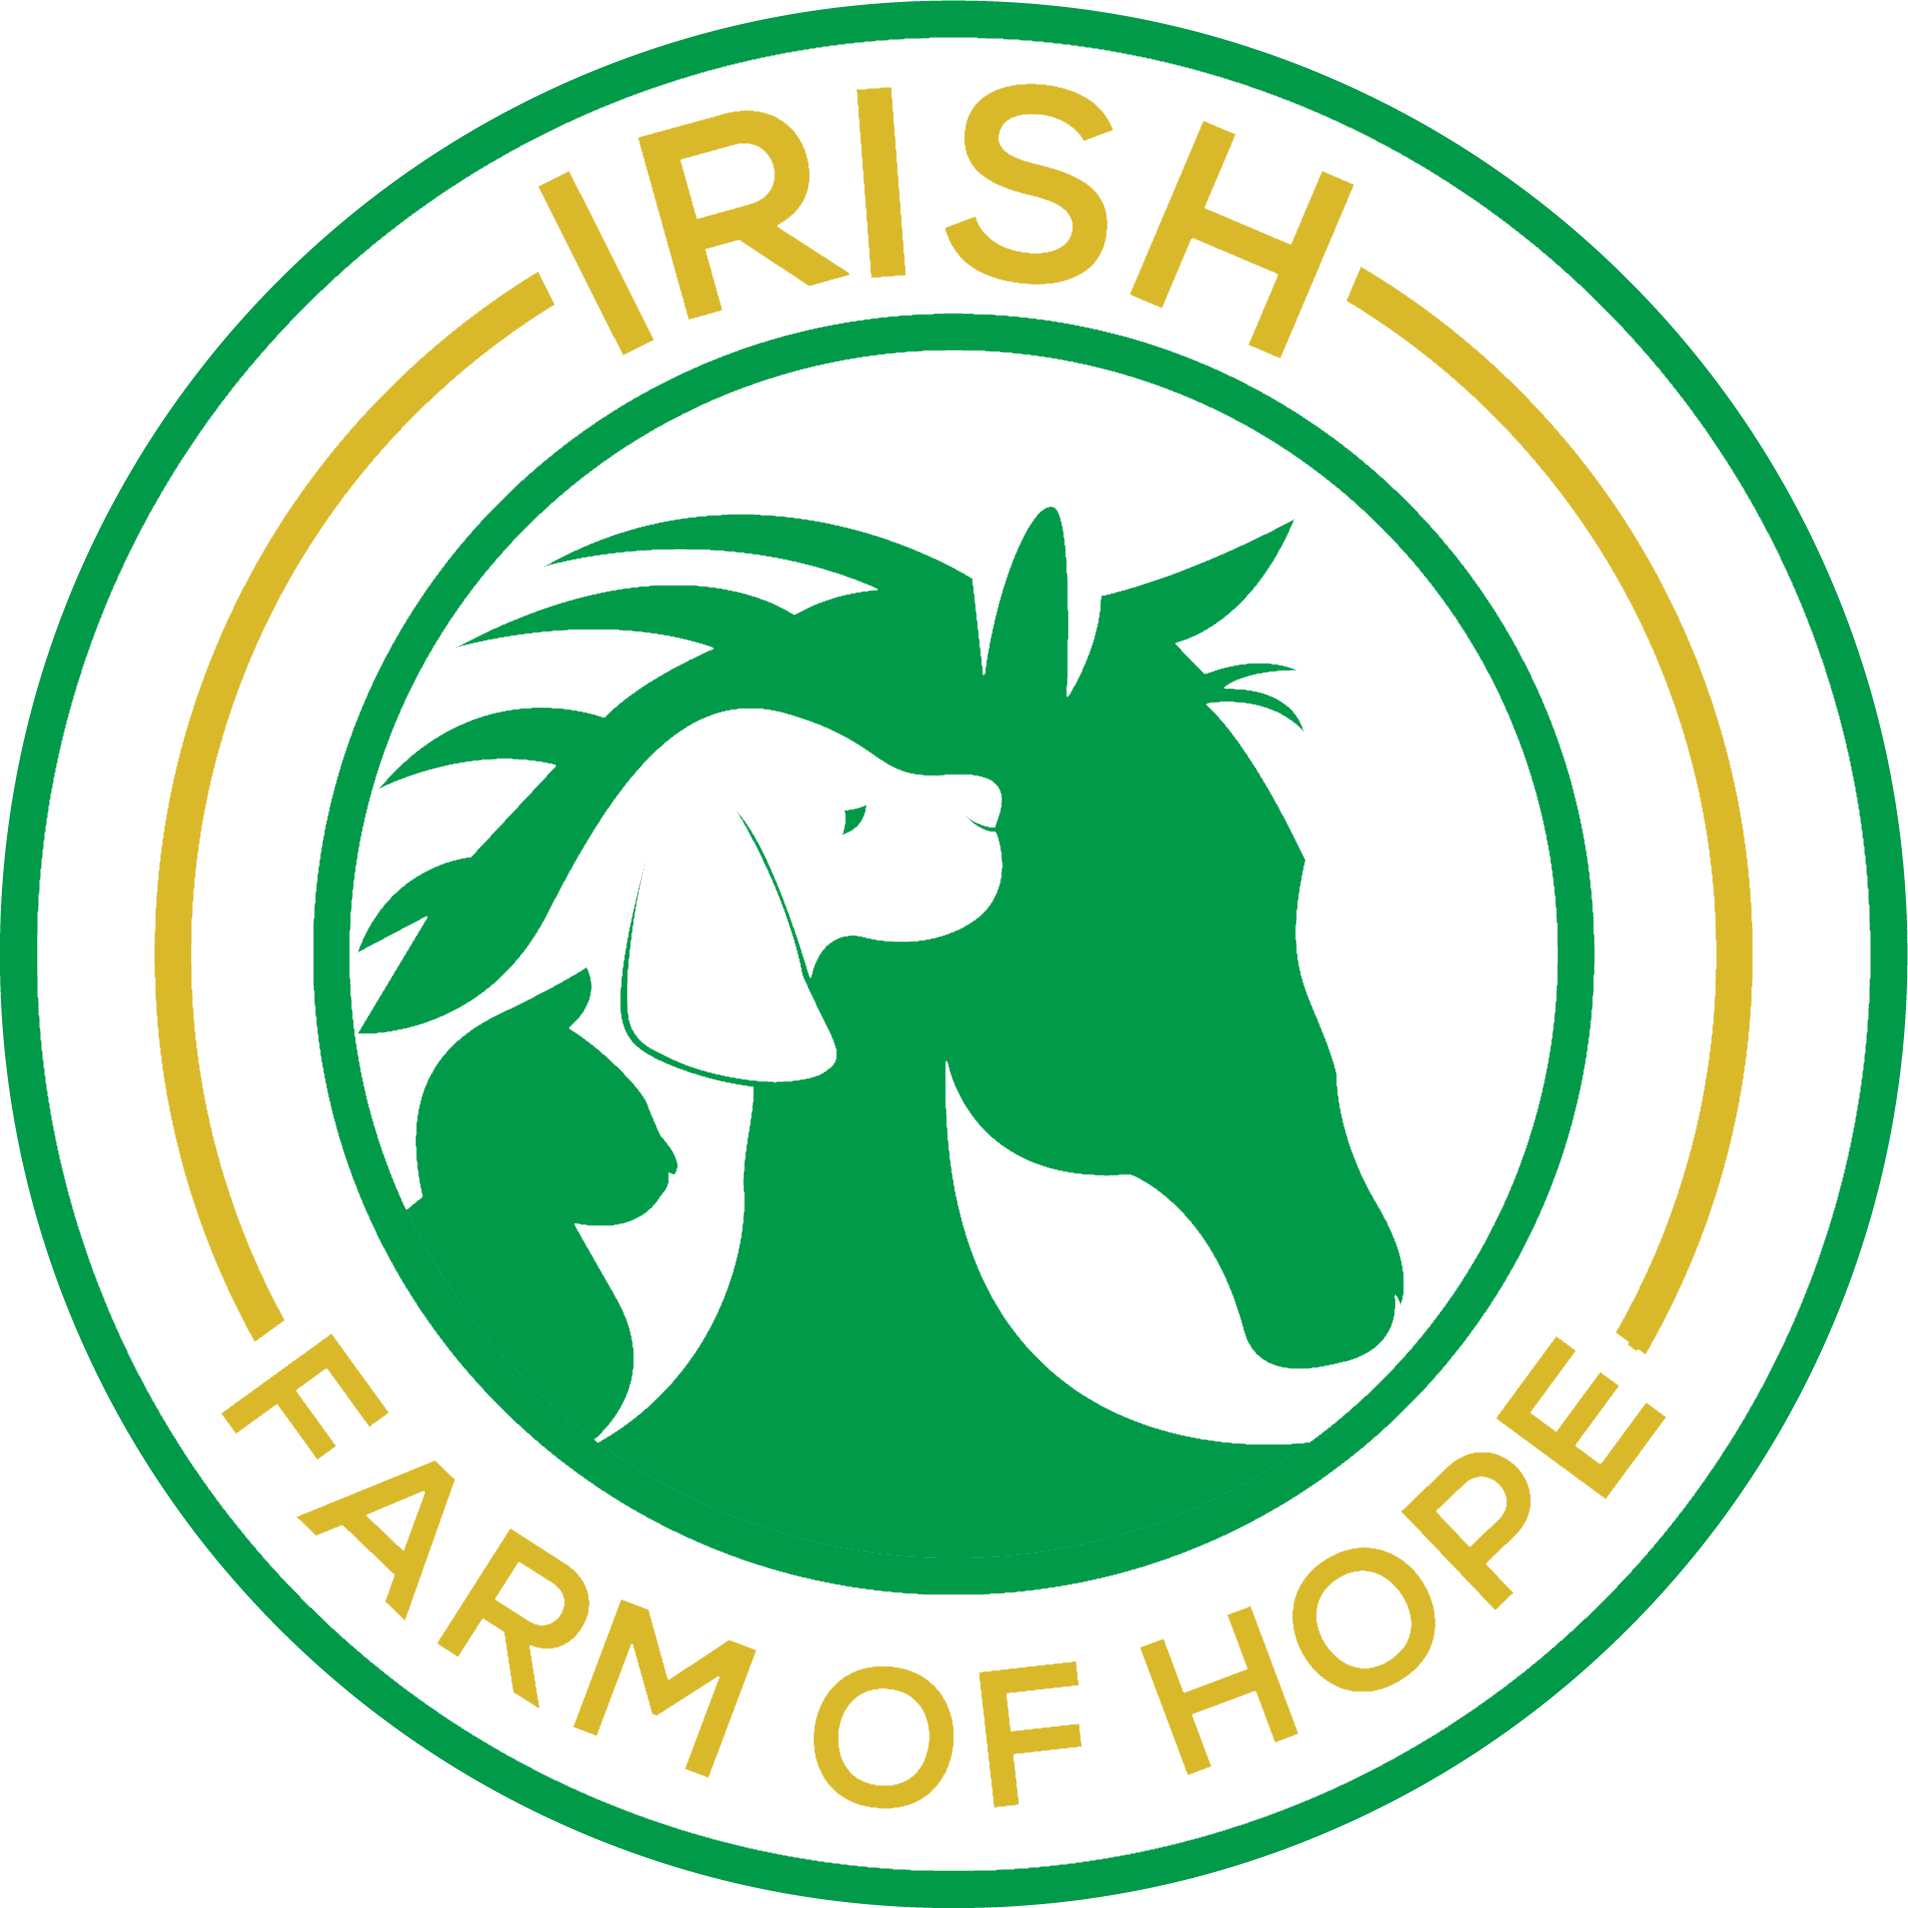 Irish Farm of Hope